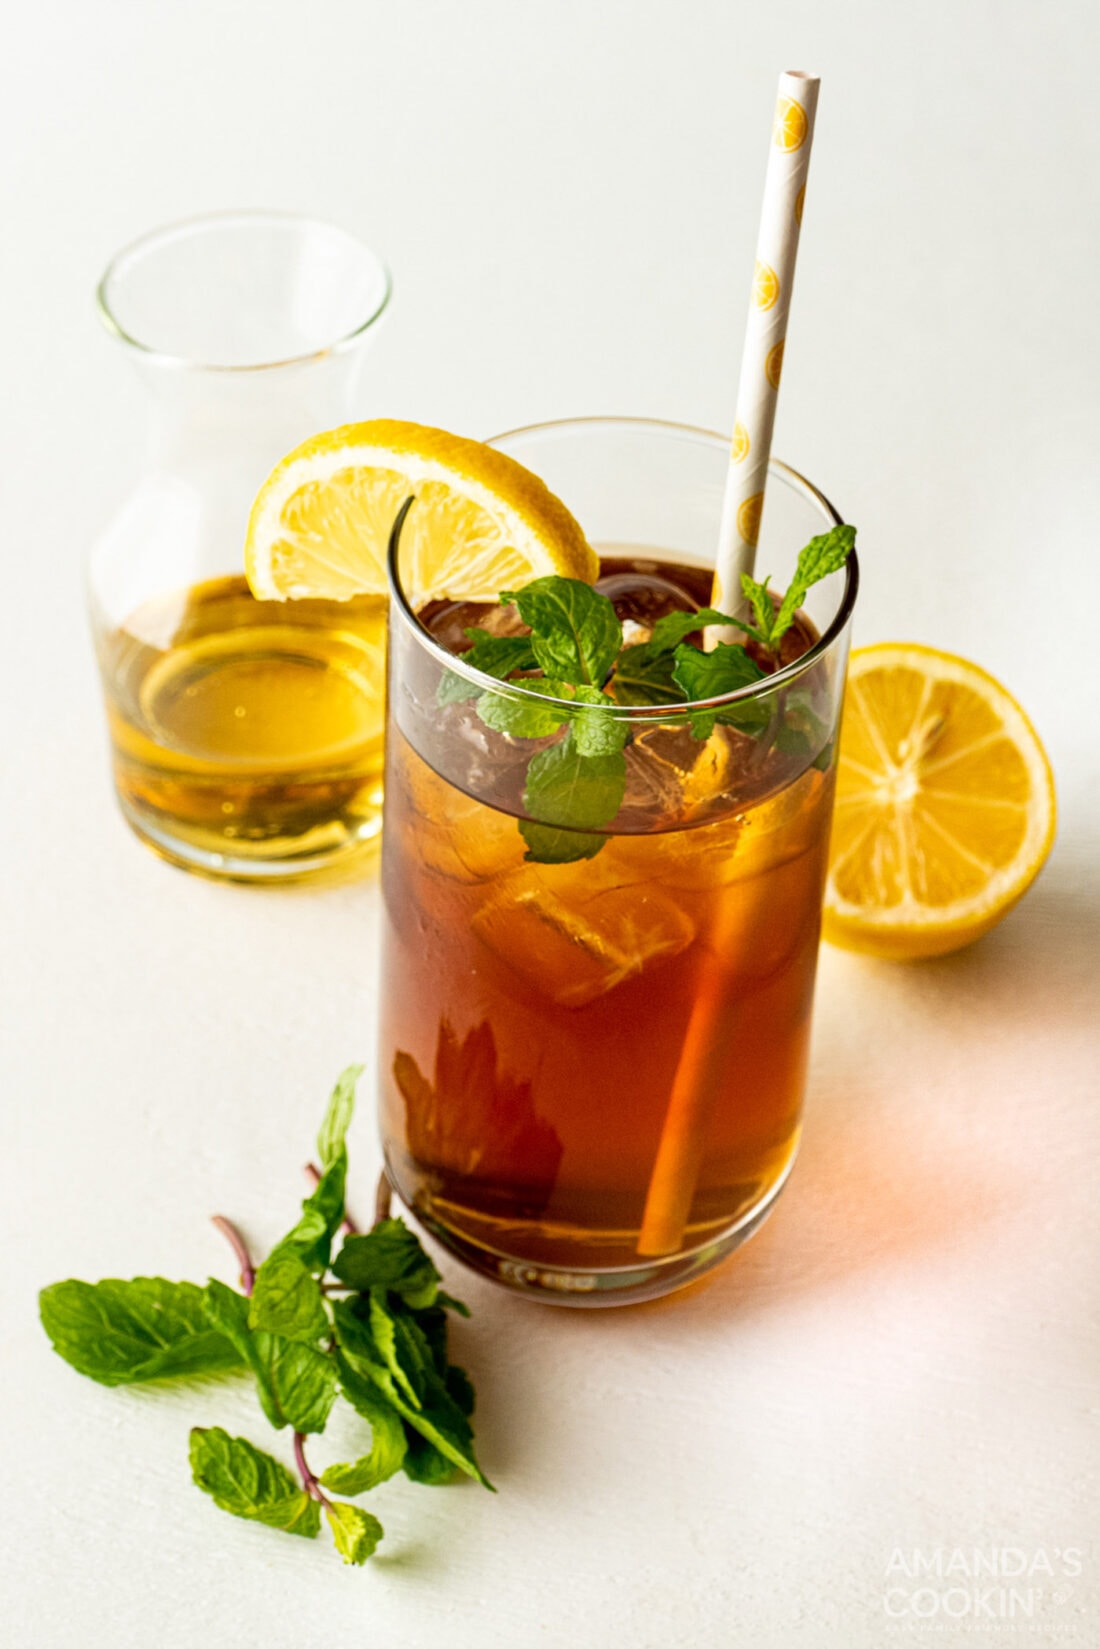 glass of iced tea cocktail